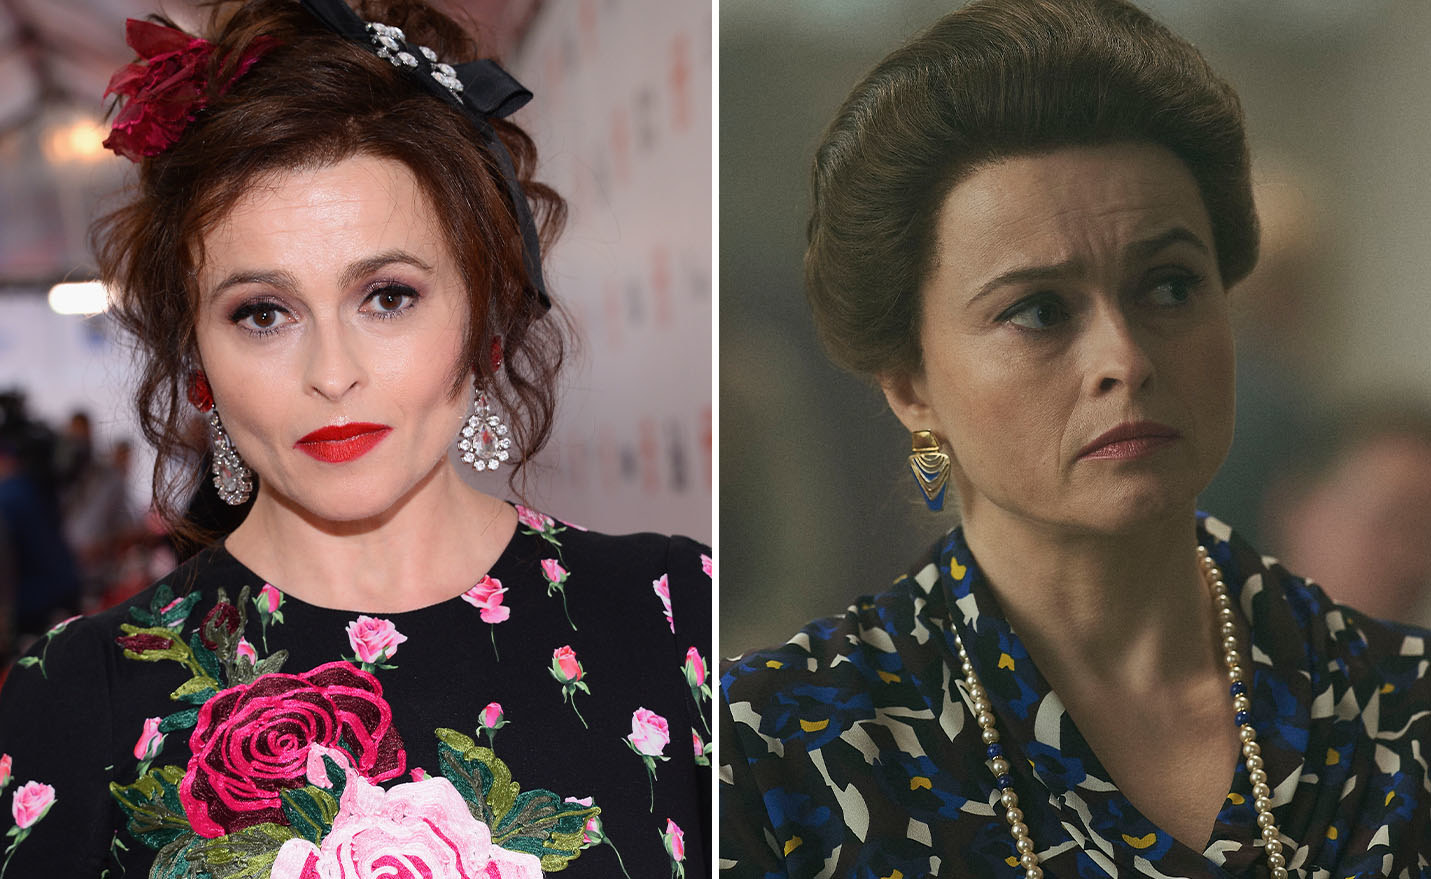 Helena Bonham Carter on a red carpet on the left and Helena Bonham Carter as Princess Margaret on the right